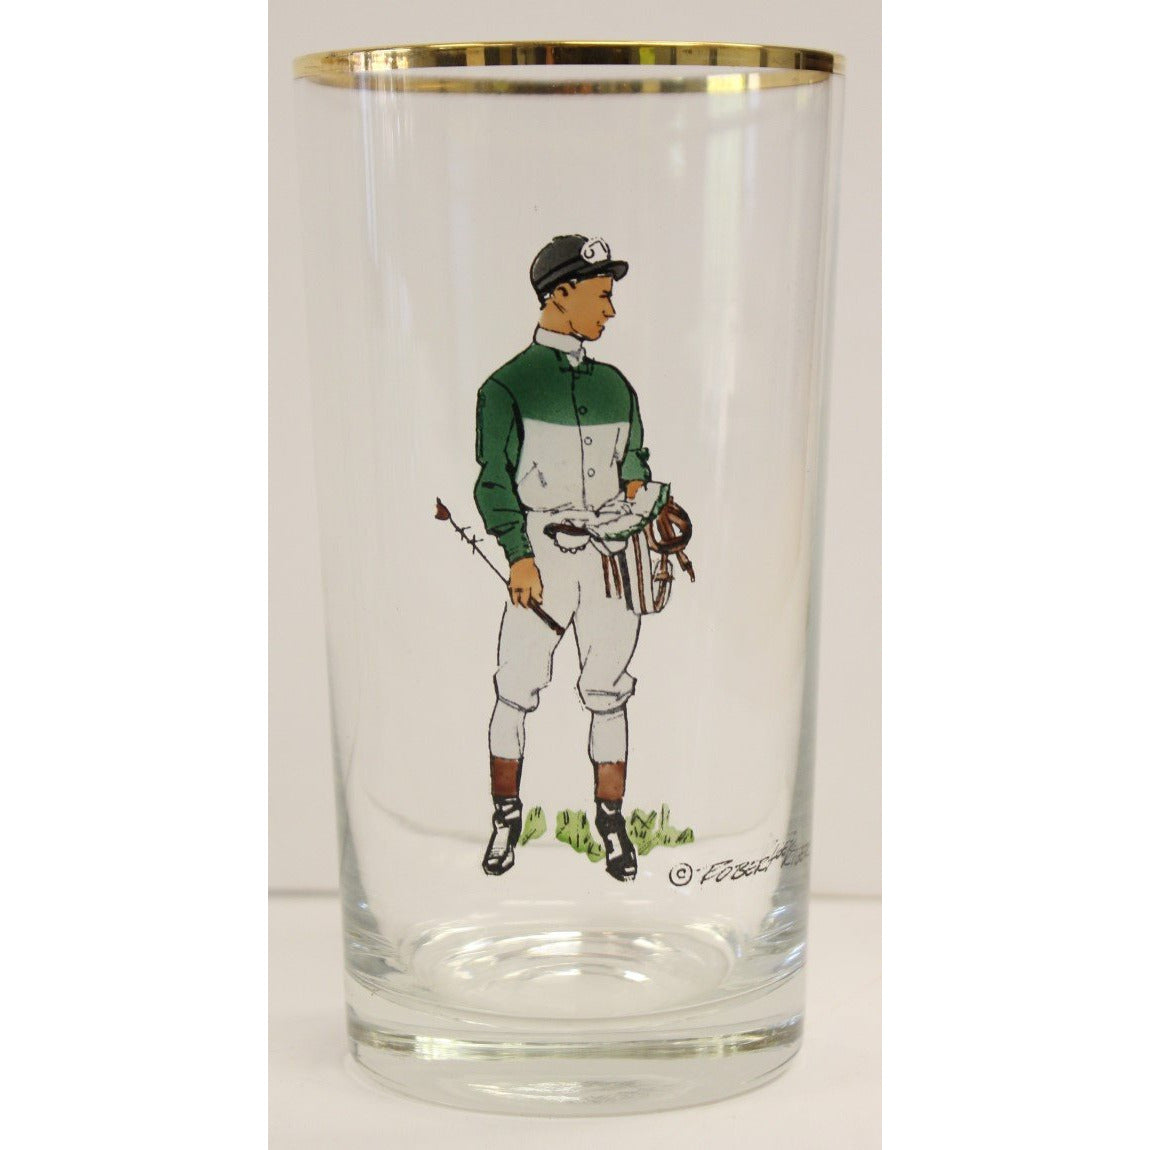 Set of 10 Robert Riger Green Jockey Highball Glasses